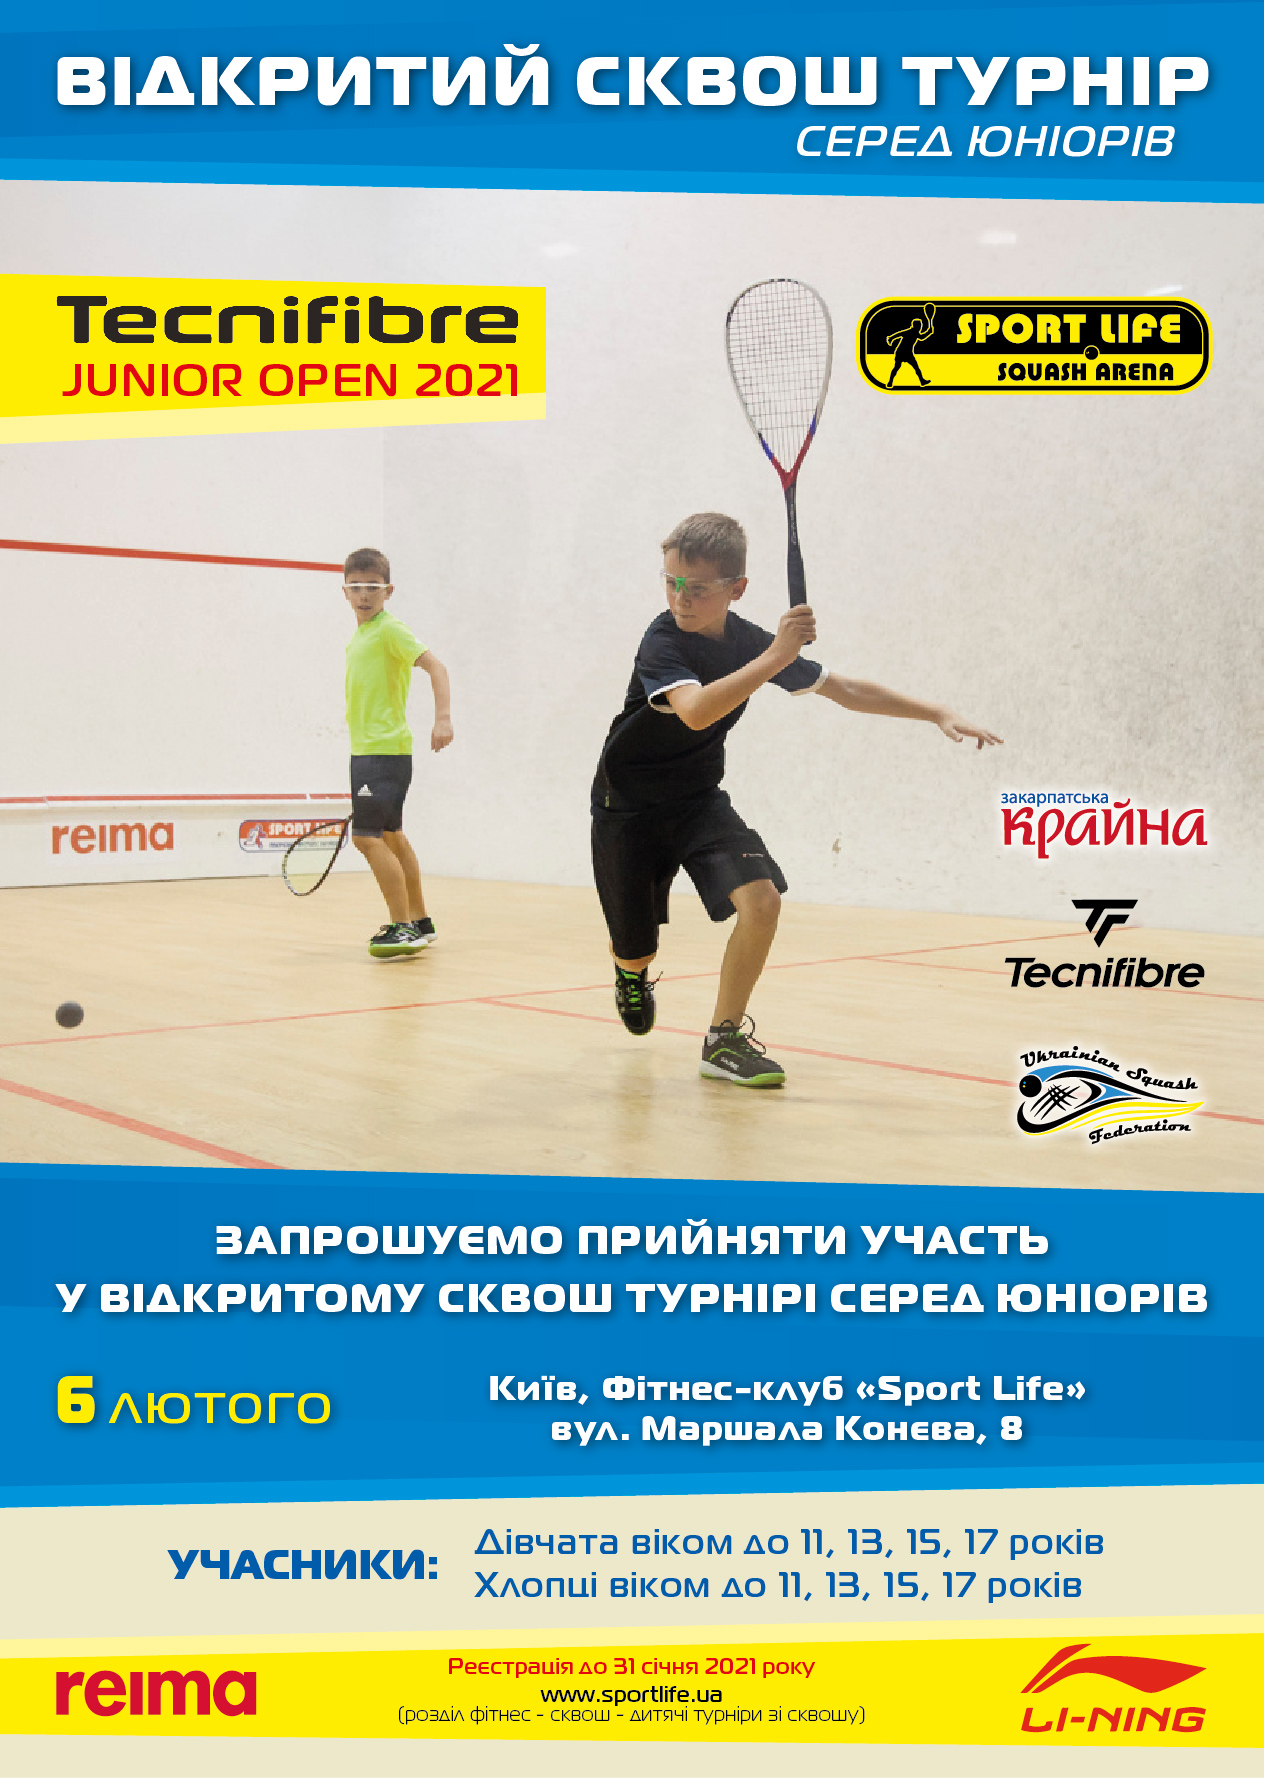 Tecnifibre Junior Open 2021